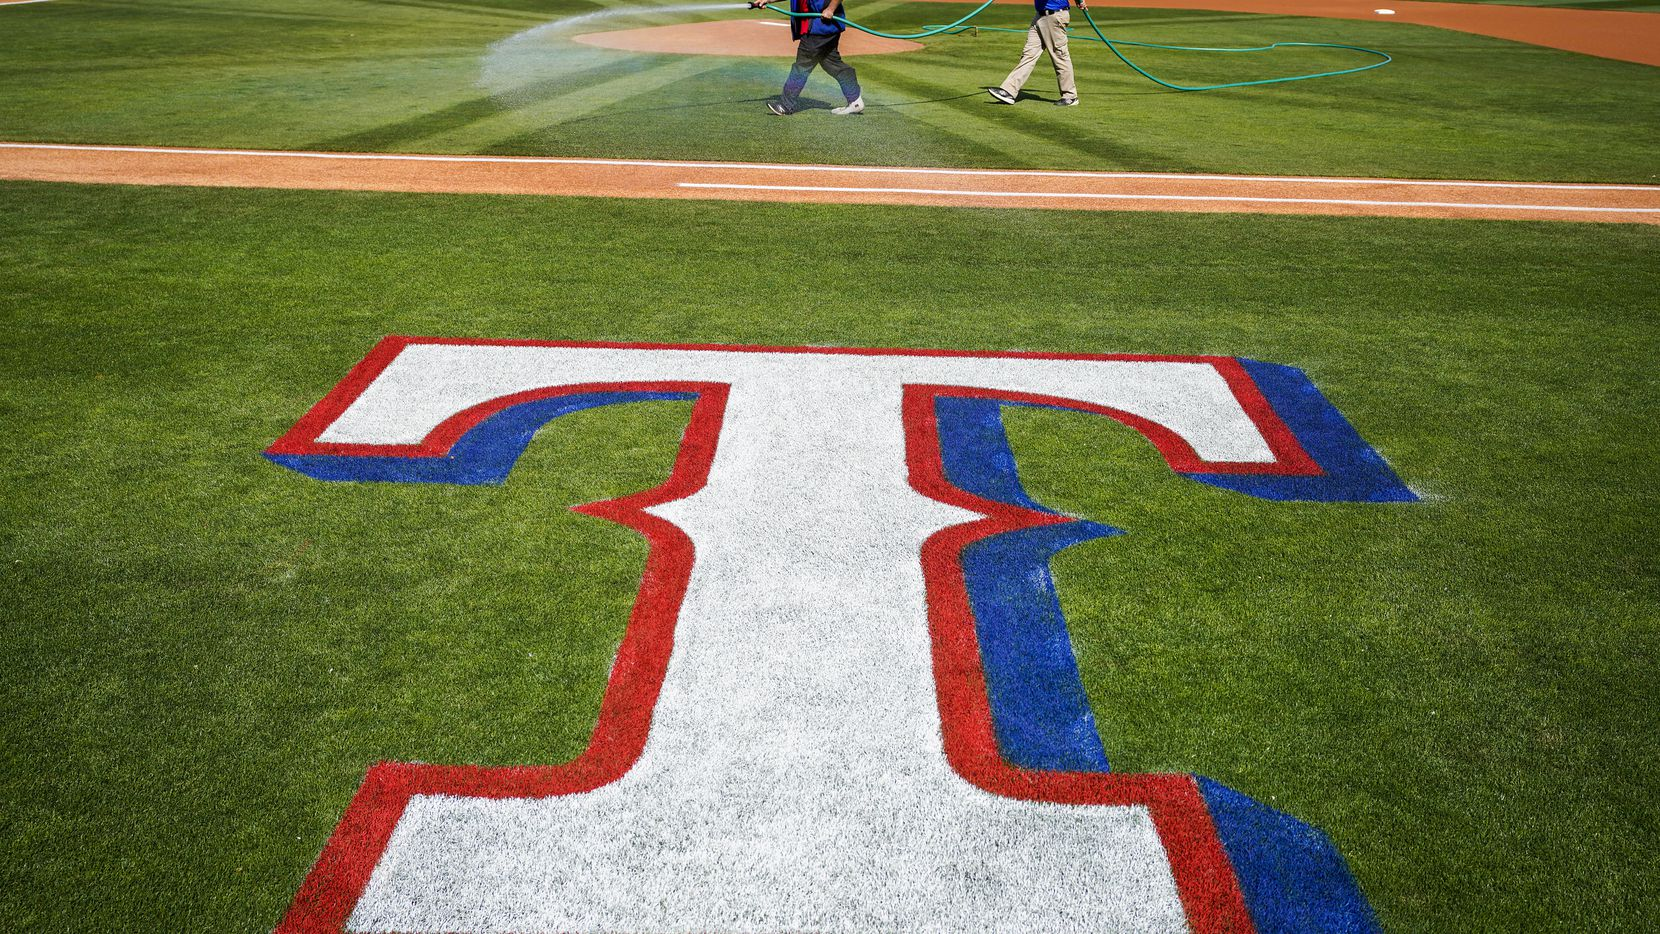 FILE - Groundskeepers prepare the field before a spring game between the Rangers and Kansas City Royals at Surprise Stadium on Friday, Feb. 21, 2020, in Surprise, Ariz.